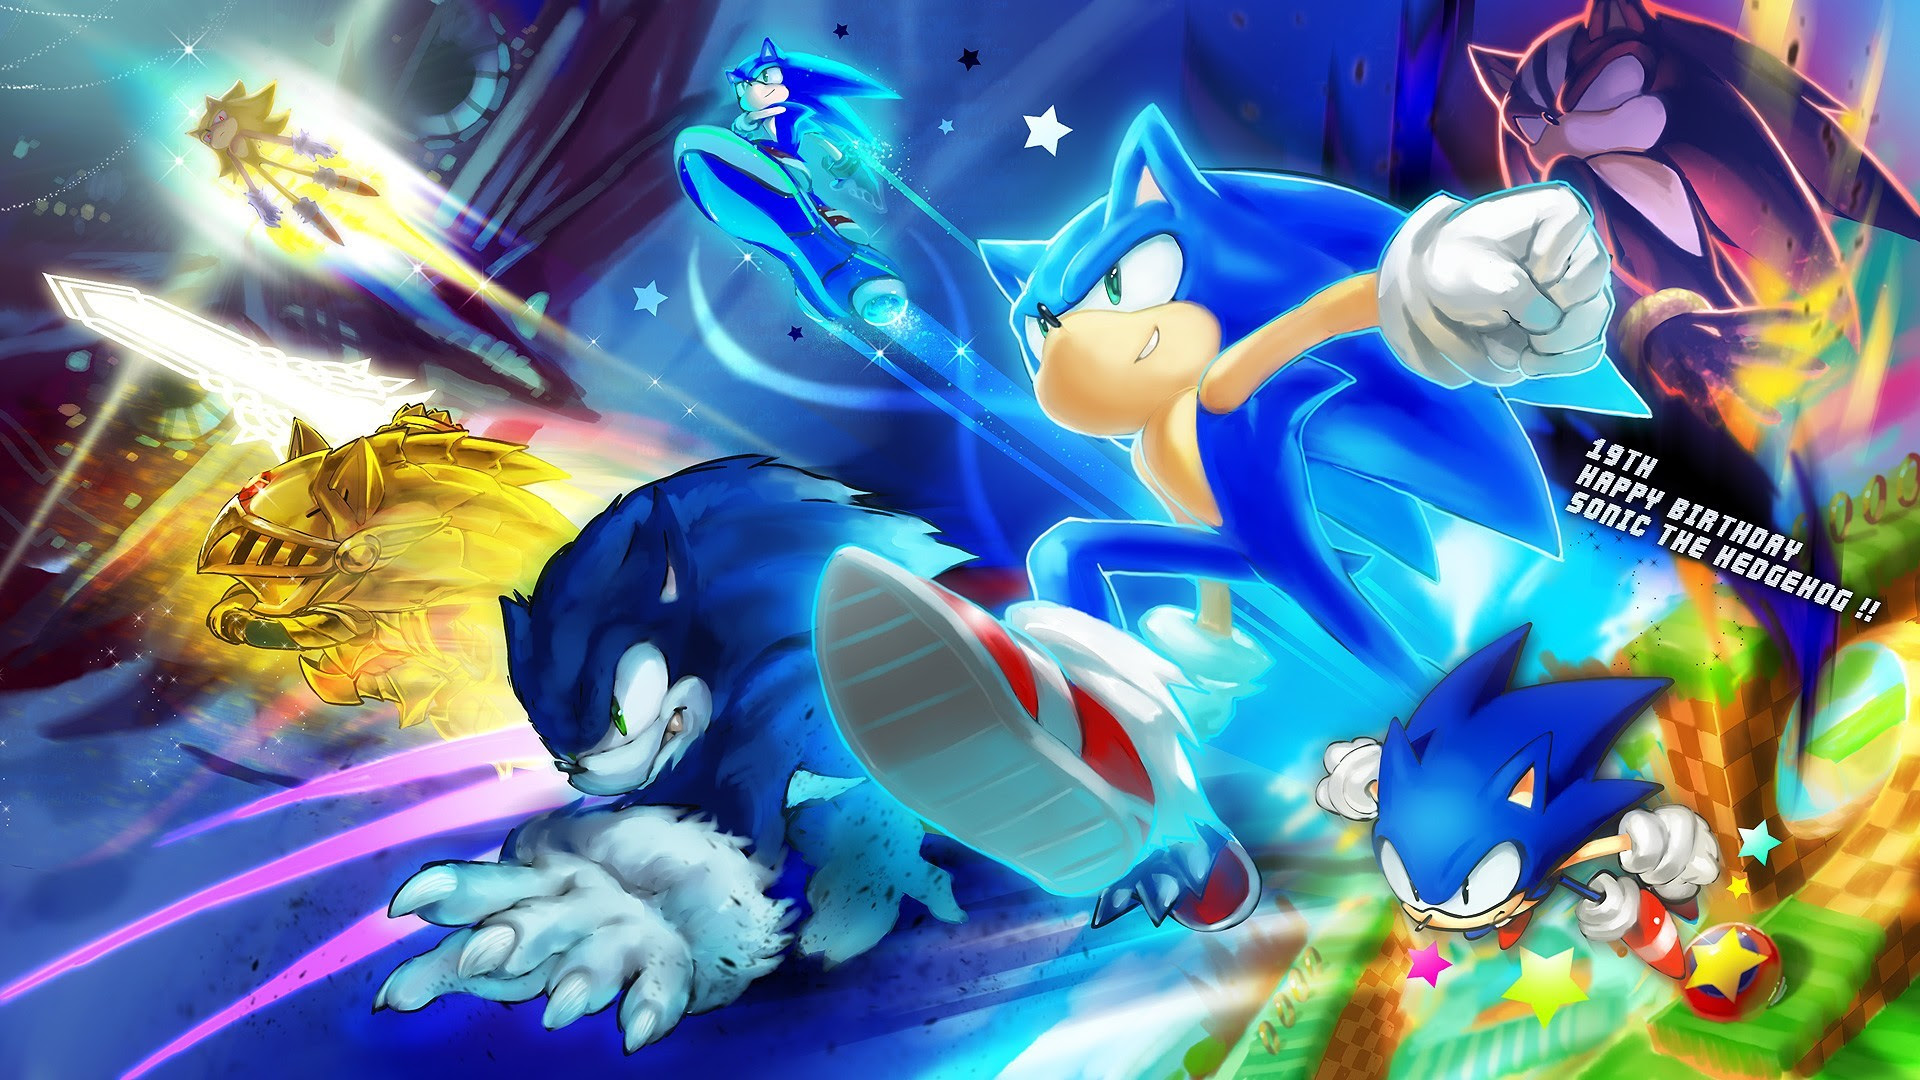 Hd Sonic Wallpaper 1080p 67 Images